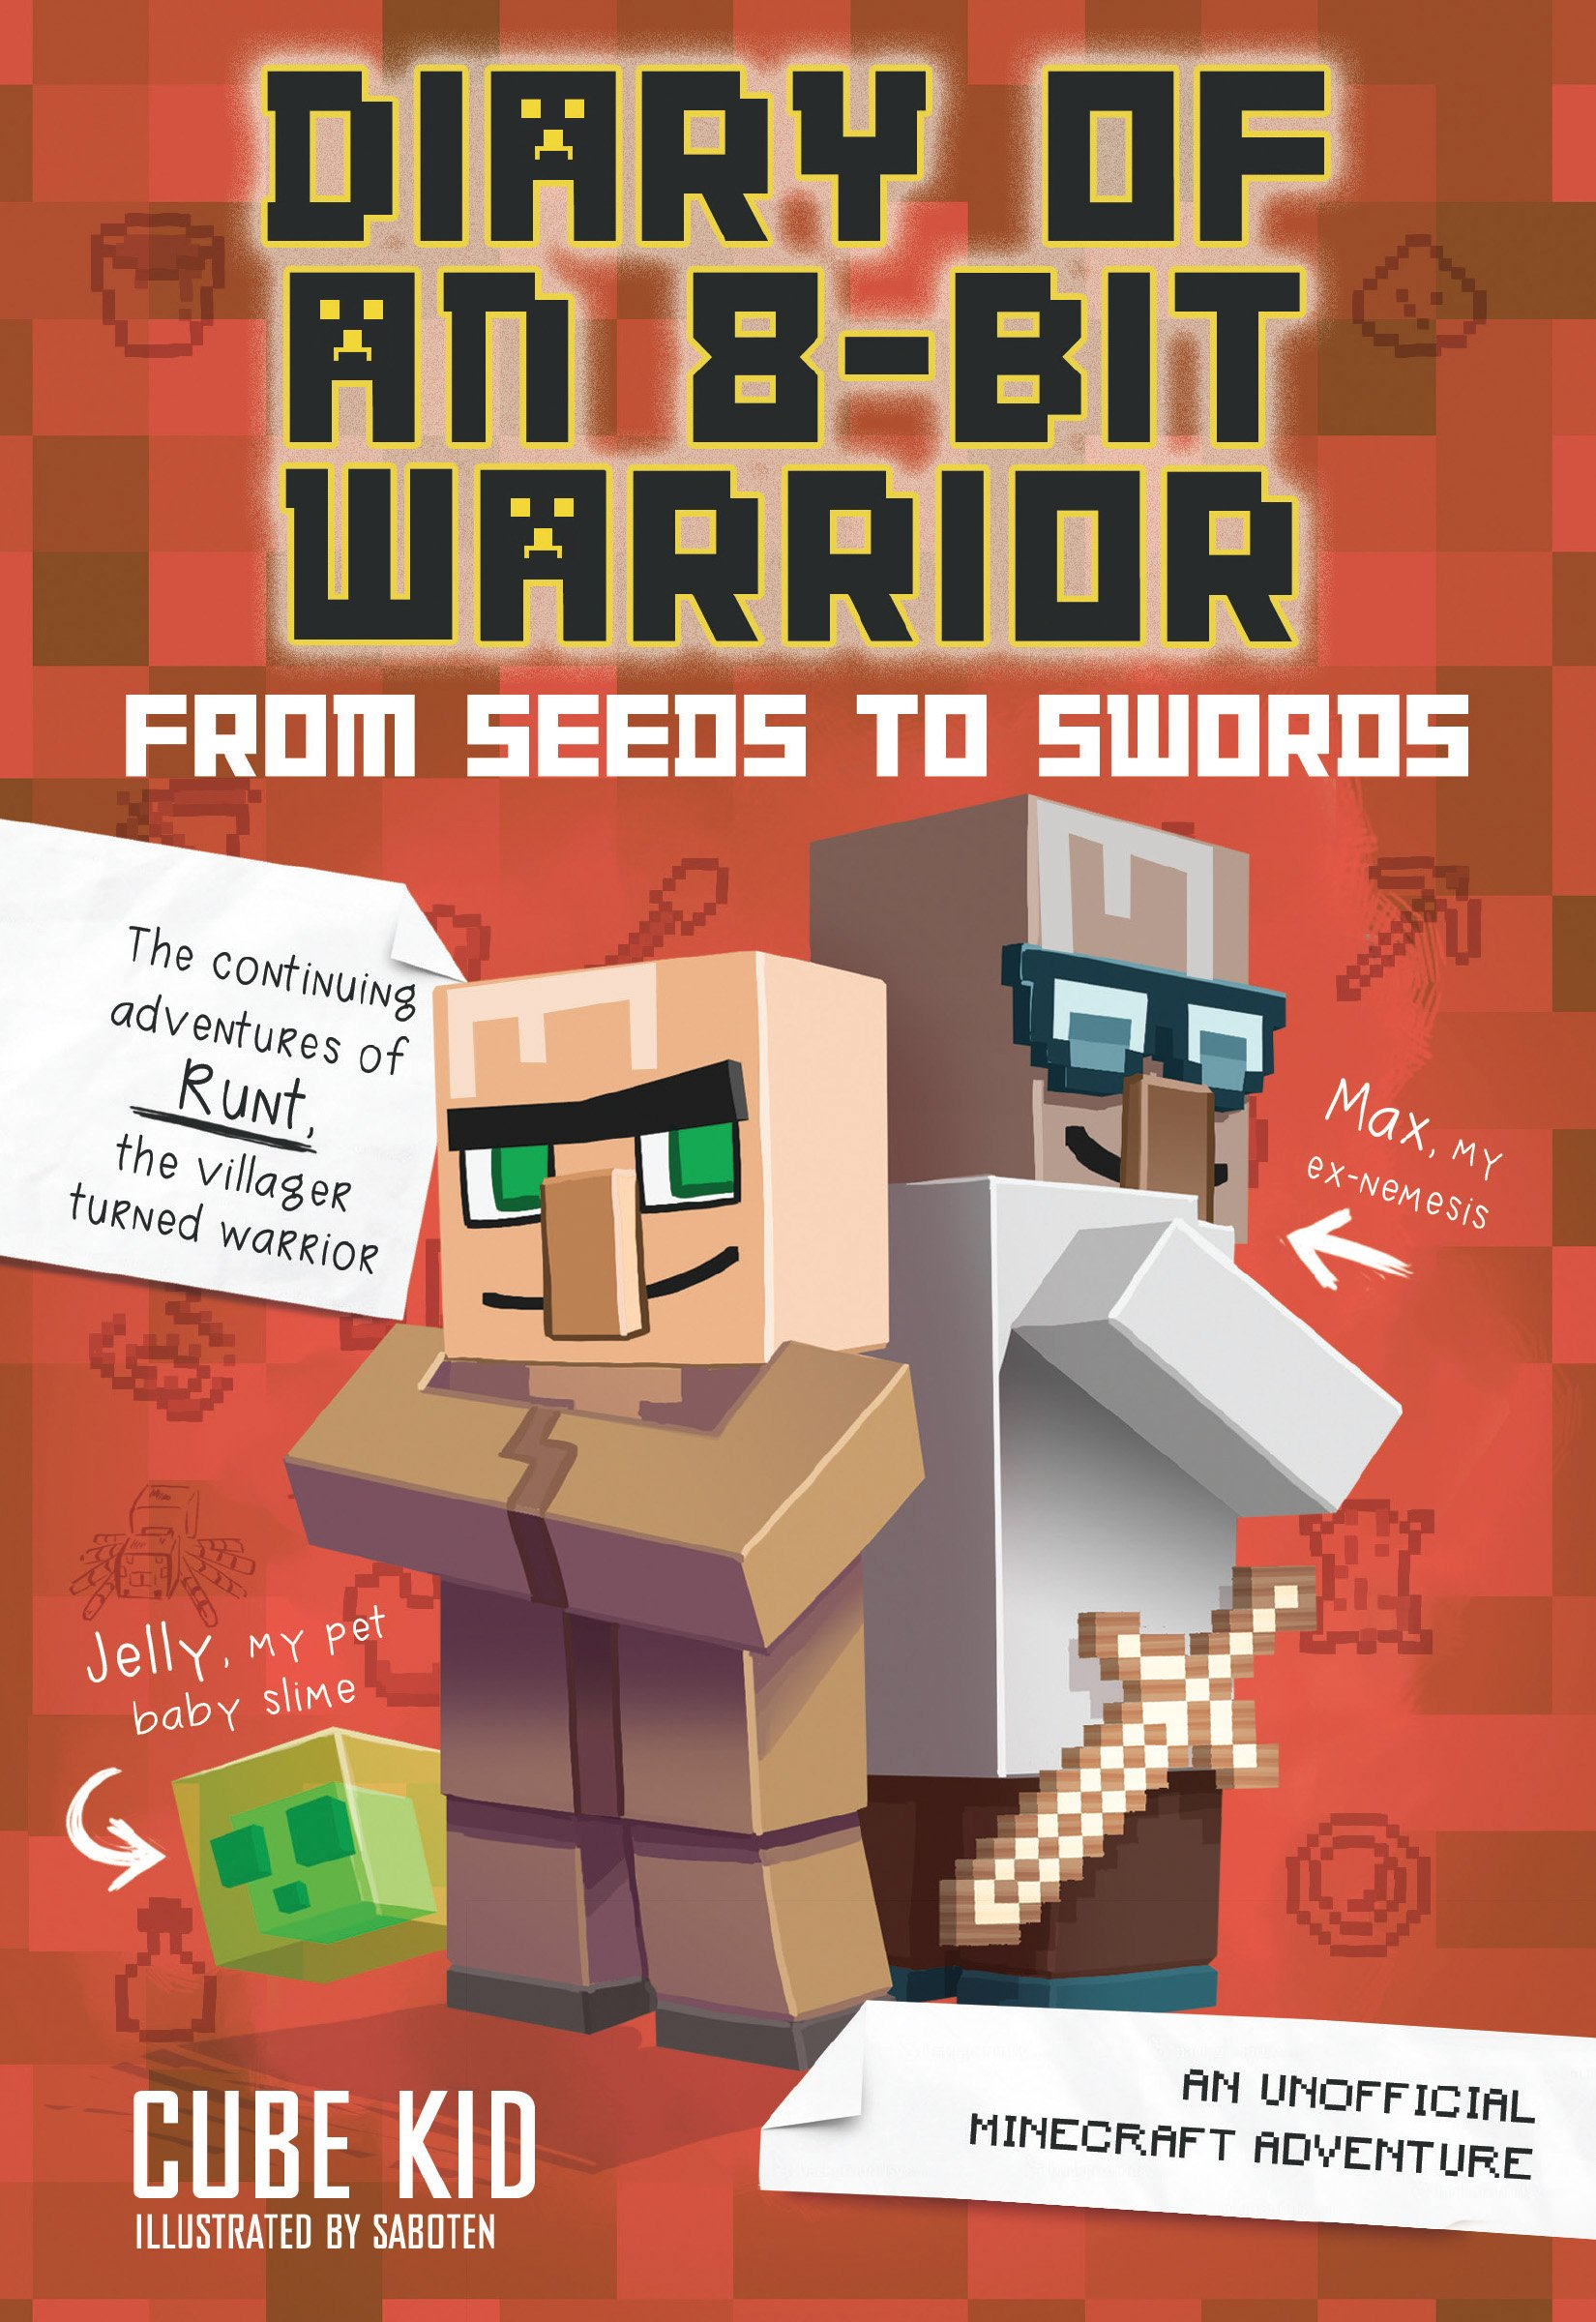 Diary Of An 8 Bit Warrior From Seeds To Swords Book 2 8 Bit Warrior Series An Unofficial Minecraft Adventure Volume 2 Cube Kid 9781449480080 Amazon Com Books